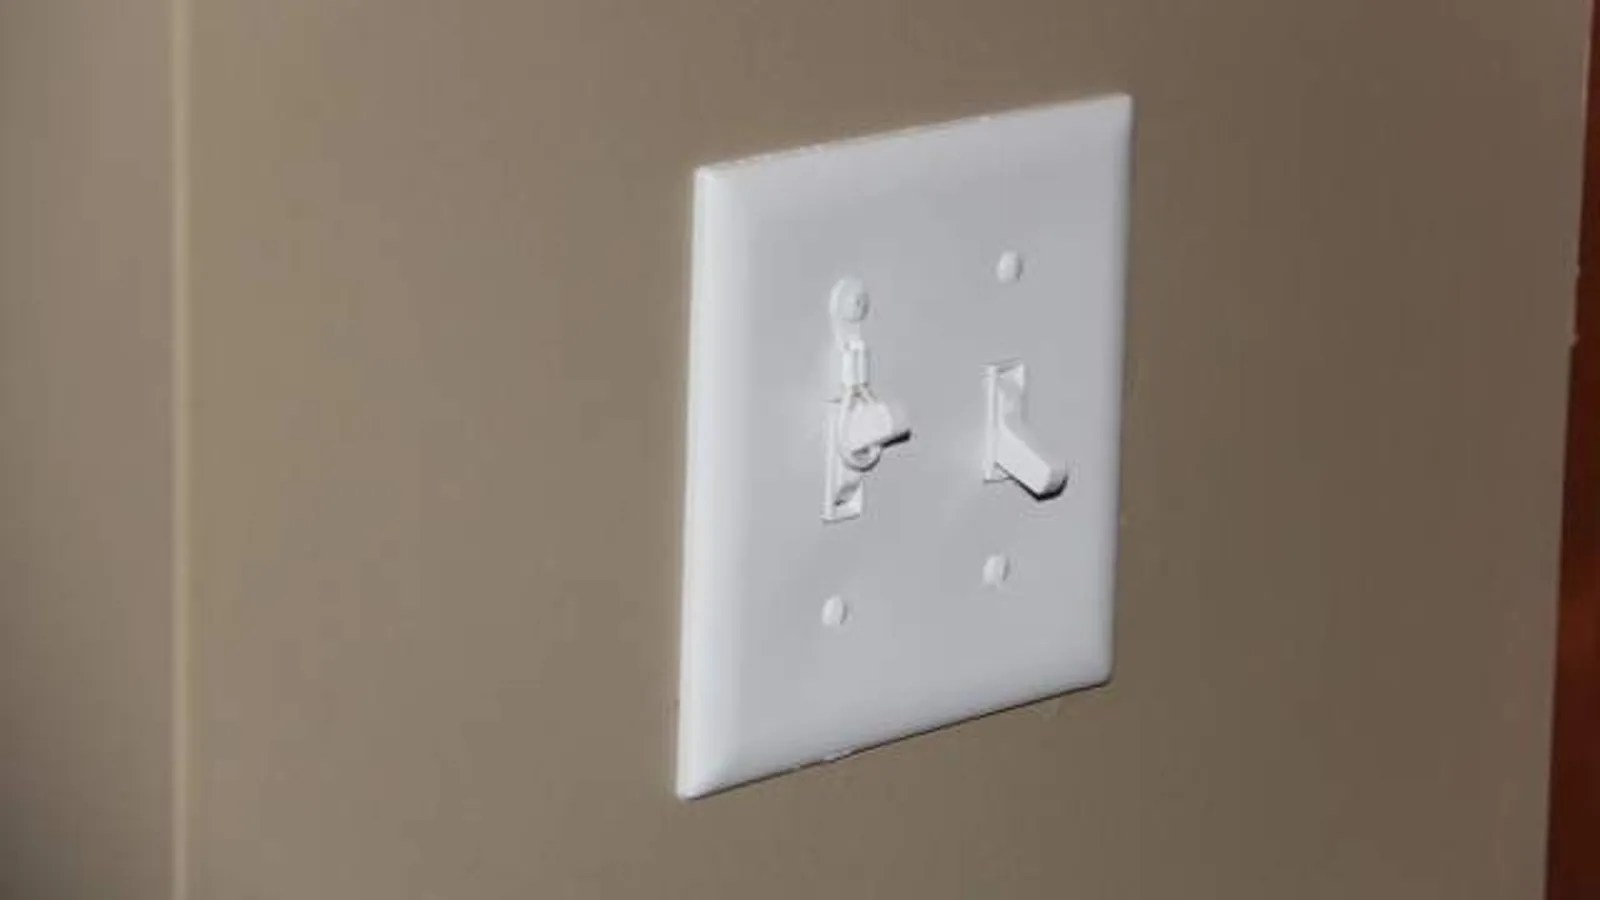 Light Switch Wiring On Wiring A Light Switch And Outlet Howishow